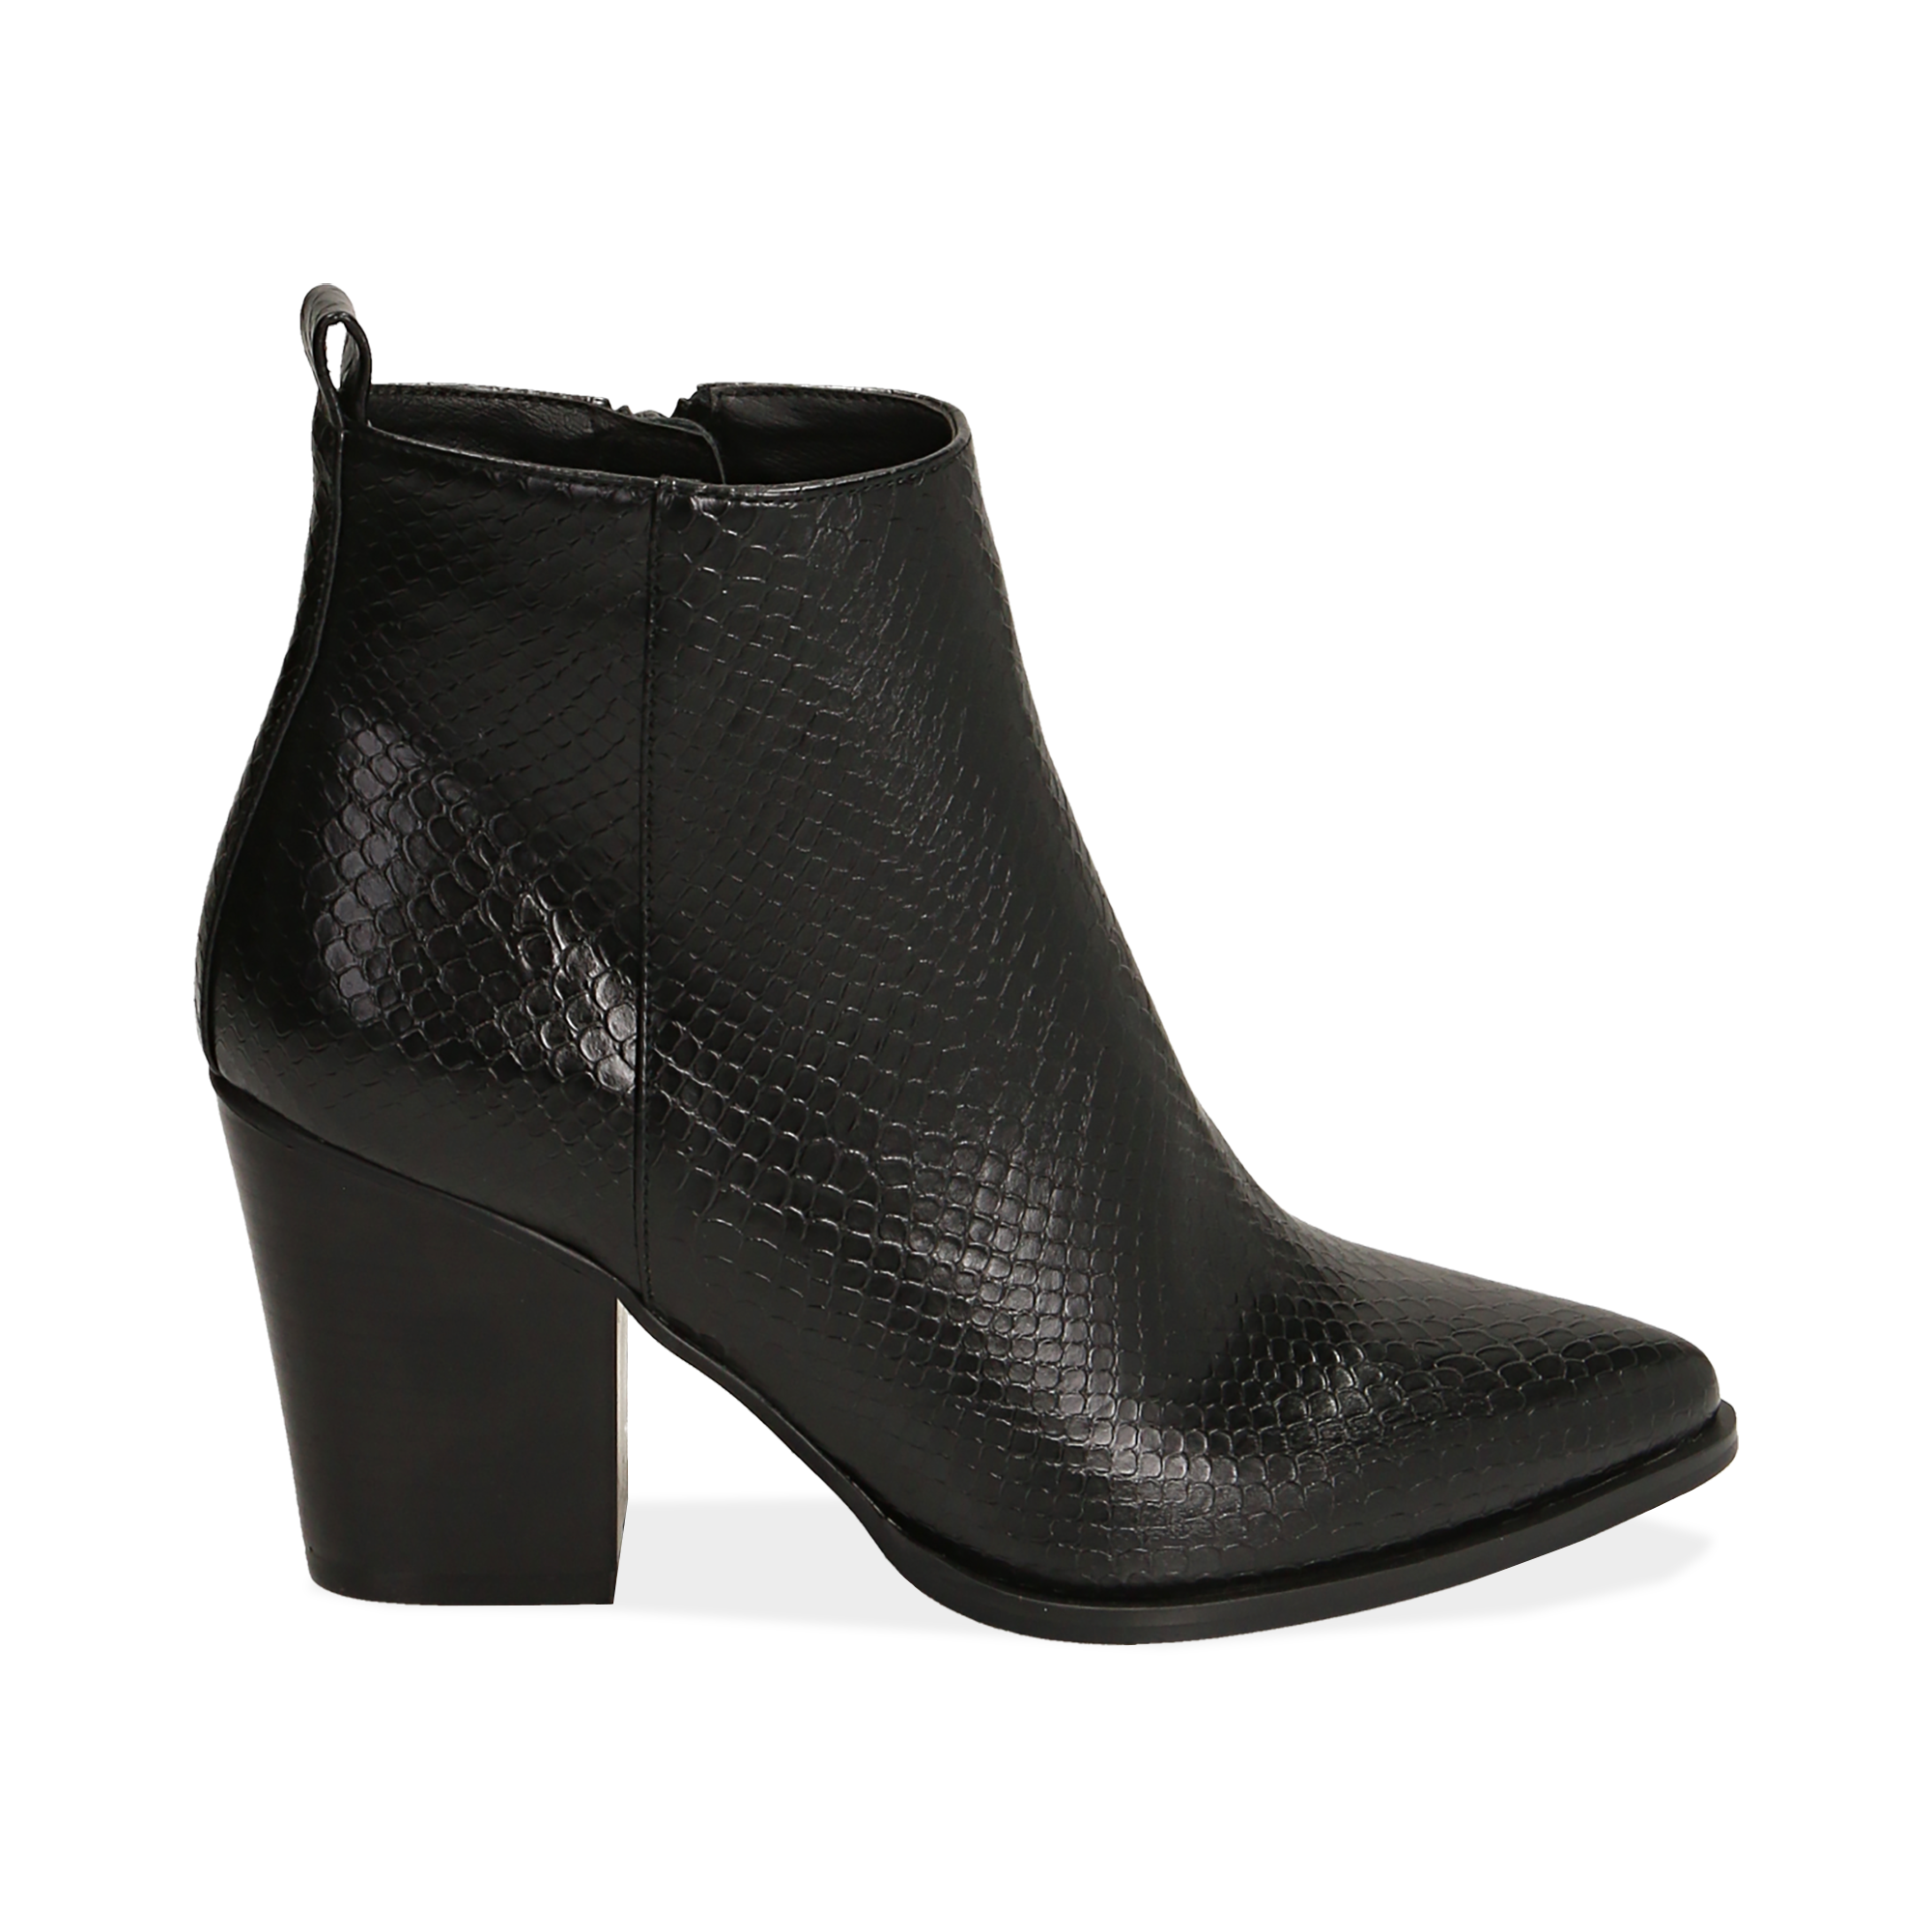 Ankle boots neri stampa vipera, tacco 8,50 cm